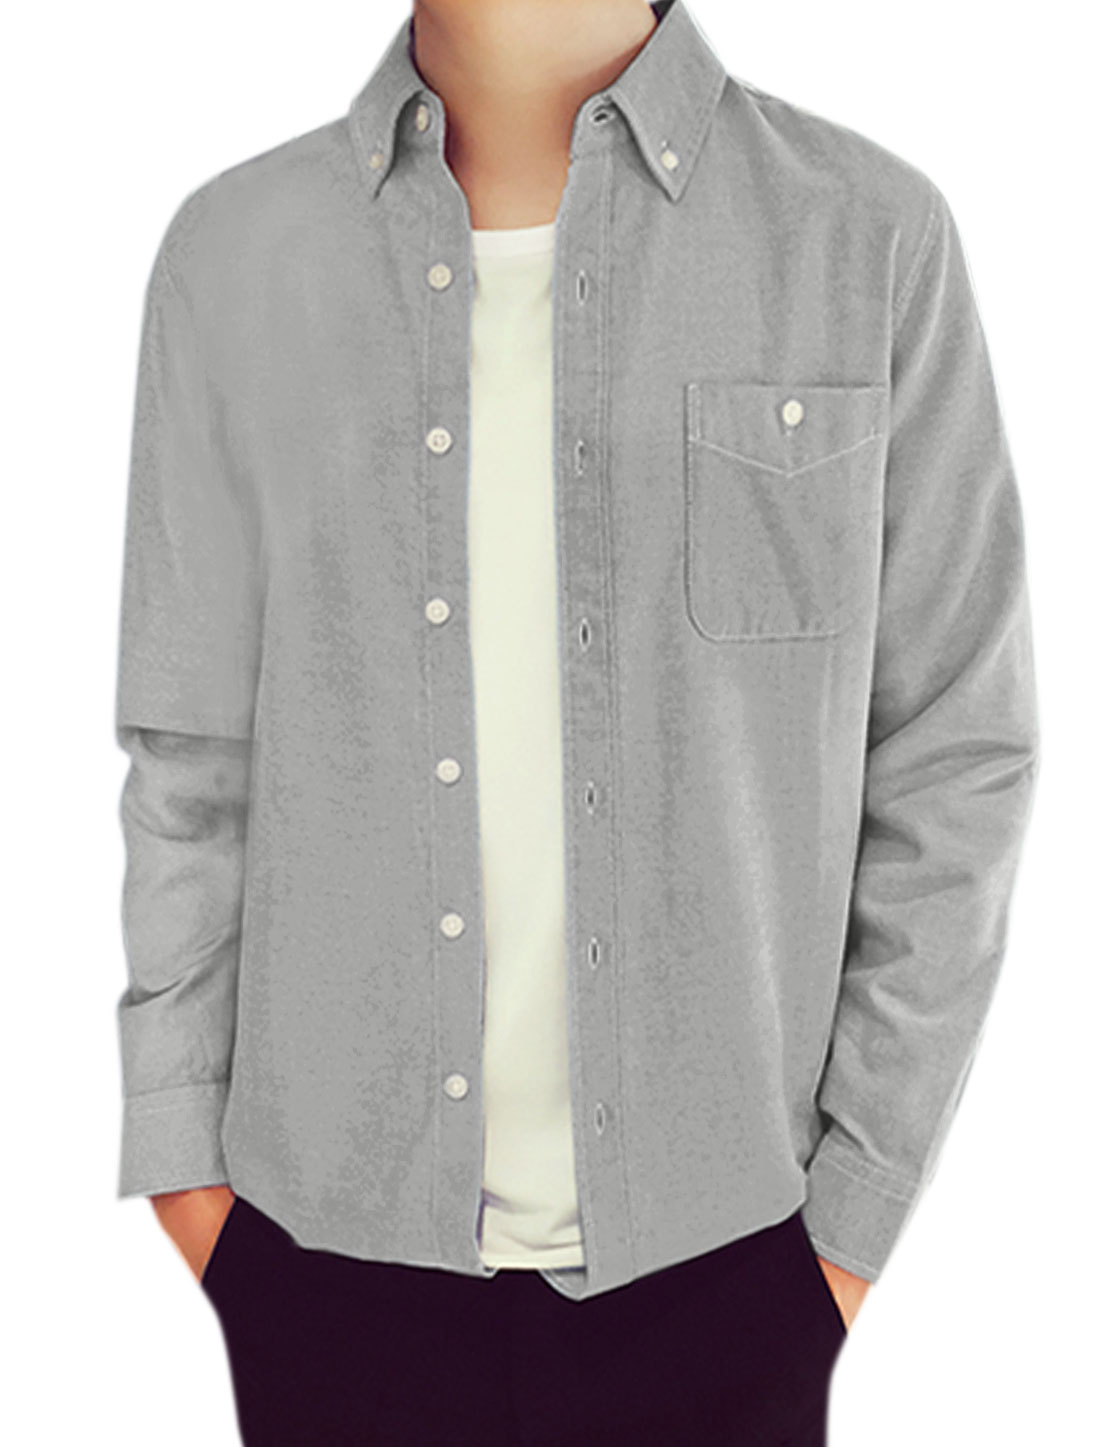 Man Long Sleeves Chest Pocket Button Down Casual Shirt Gray M